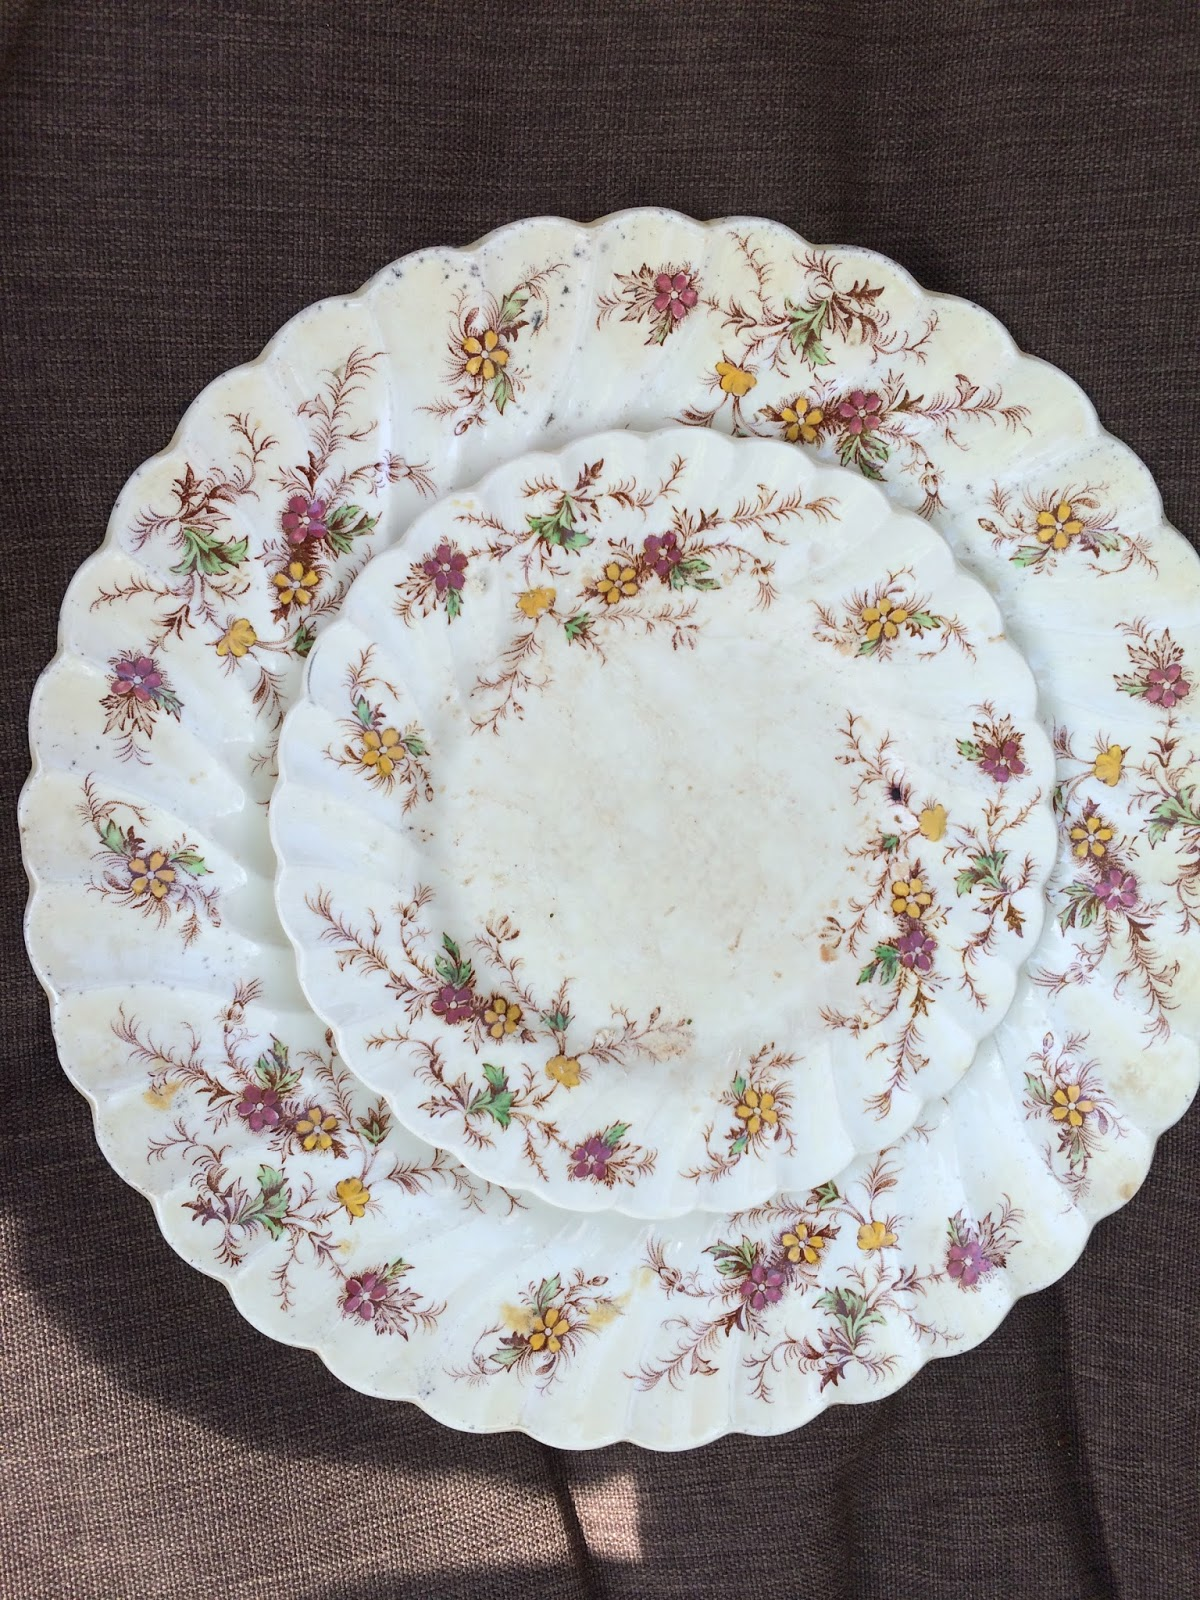 Cleaning out cupboards at our cabin at Oak Lake Beach I came across these dishes and knew they were handed down from family and was curious about their ... & 52 Ancestors - 52 Weeks: History of the Dishes